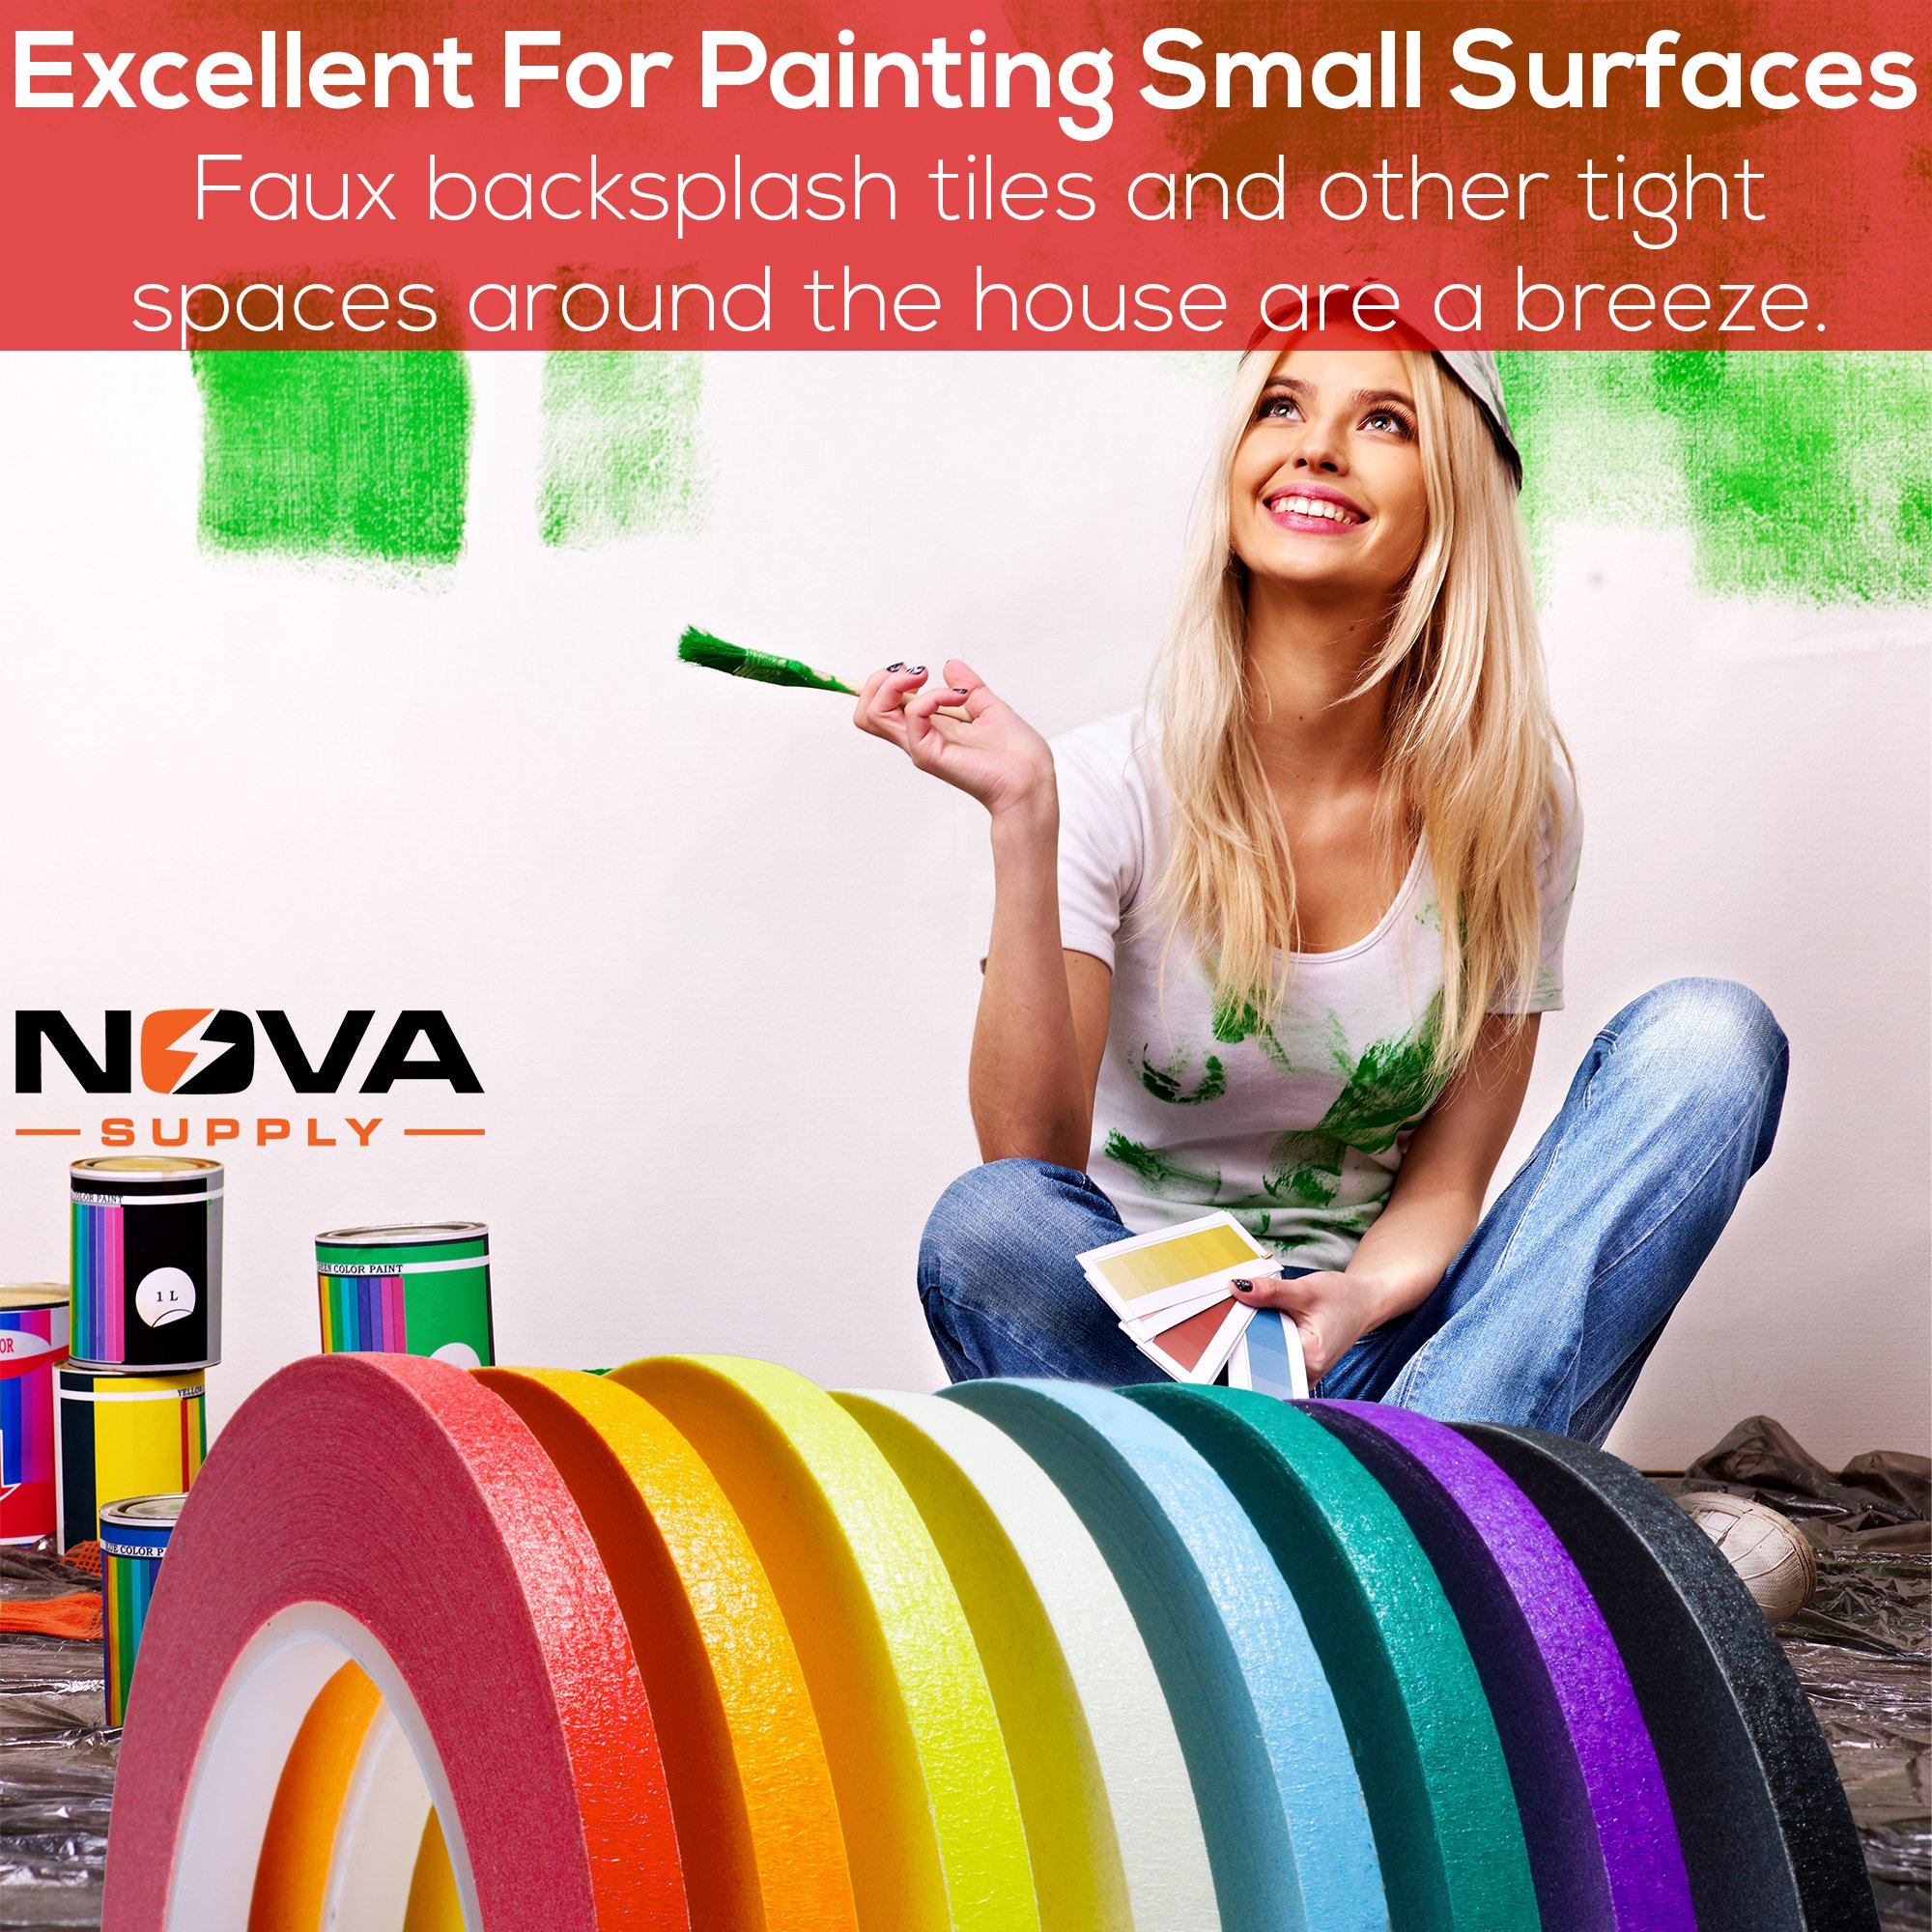 Nova Supplys 1/4in x 60yd Masking Tape, 8 Color Value Pack. Professional Grade Adhesive is Super Thin, Conforms to Irregular Surfaces, Is Easy to Tear & Release for Labeling, Painting, & Decorating. by Nova (Image #5)